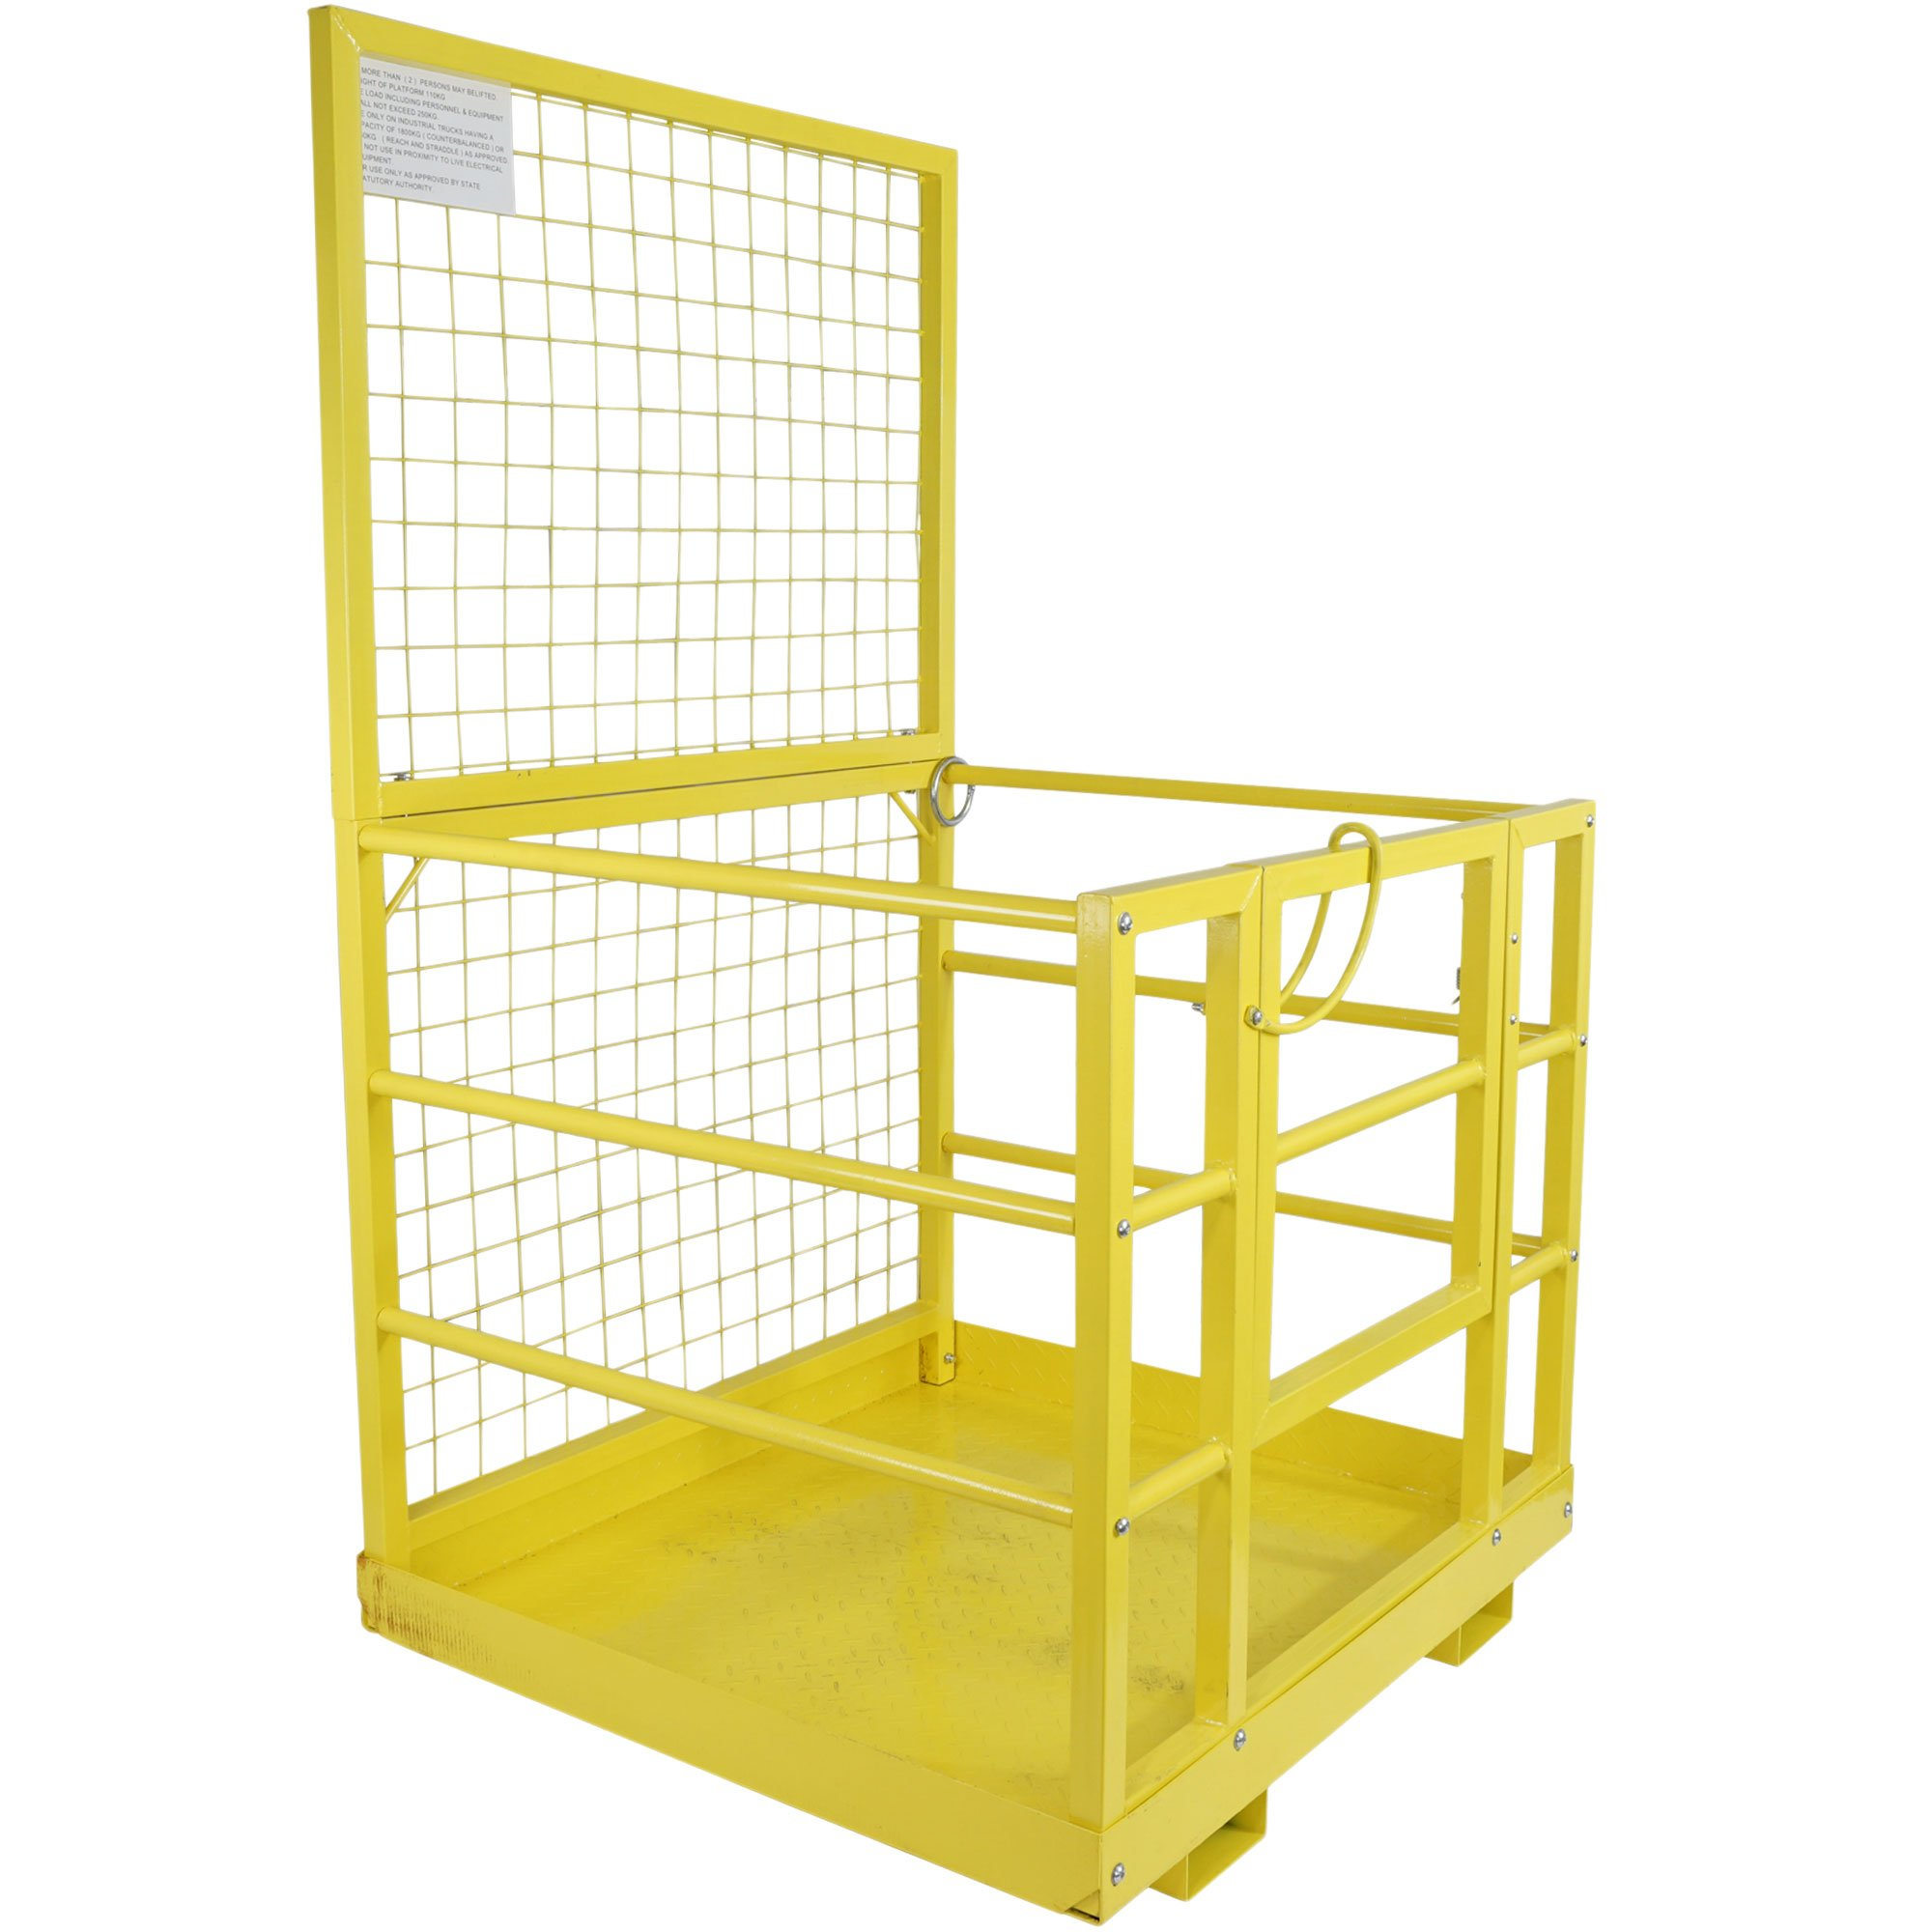 Forklift Safety Cage Work Platform Lift Basket Aerial Fence Rails Yellow 2 man by Titan Attachments (Image #7)